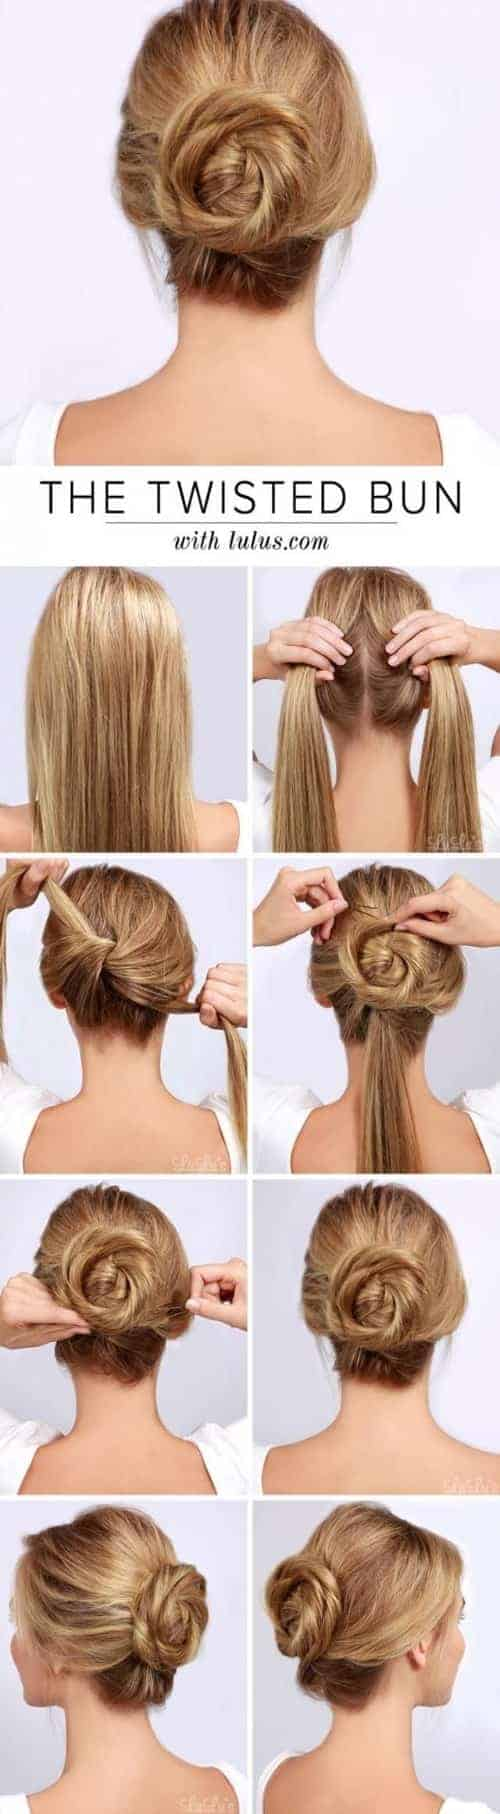 low twisted bun effortless long hairstyle for date ngiht